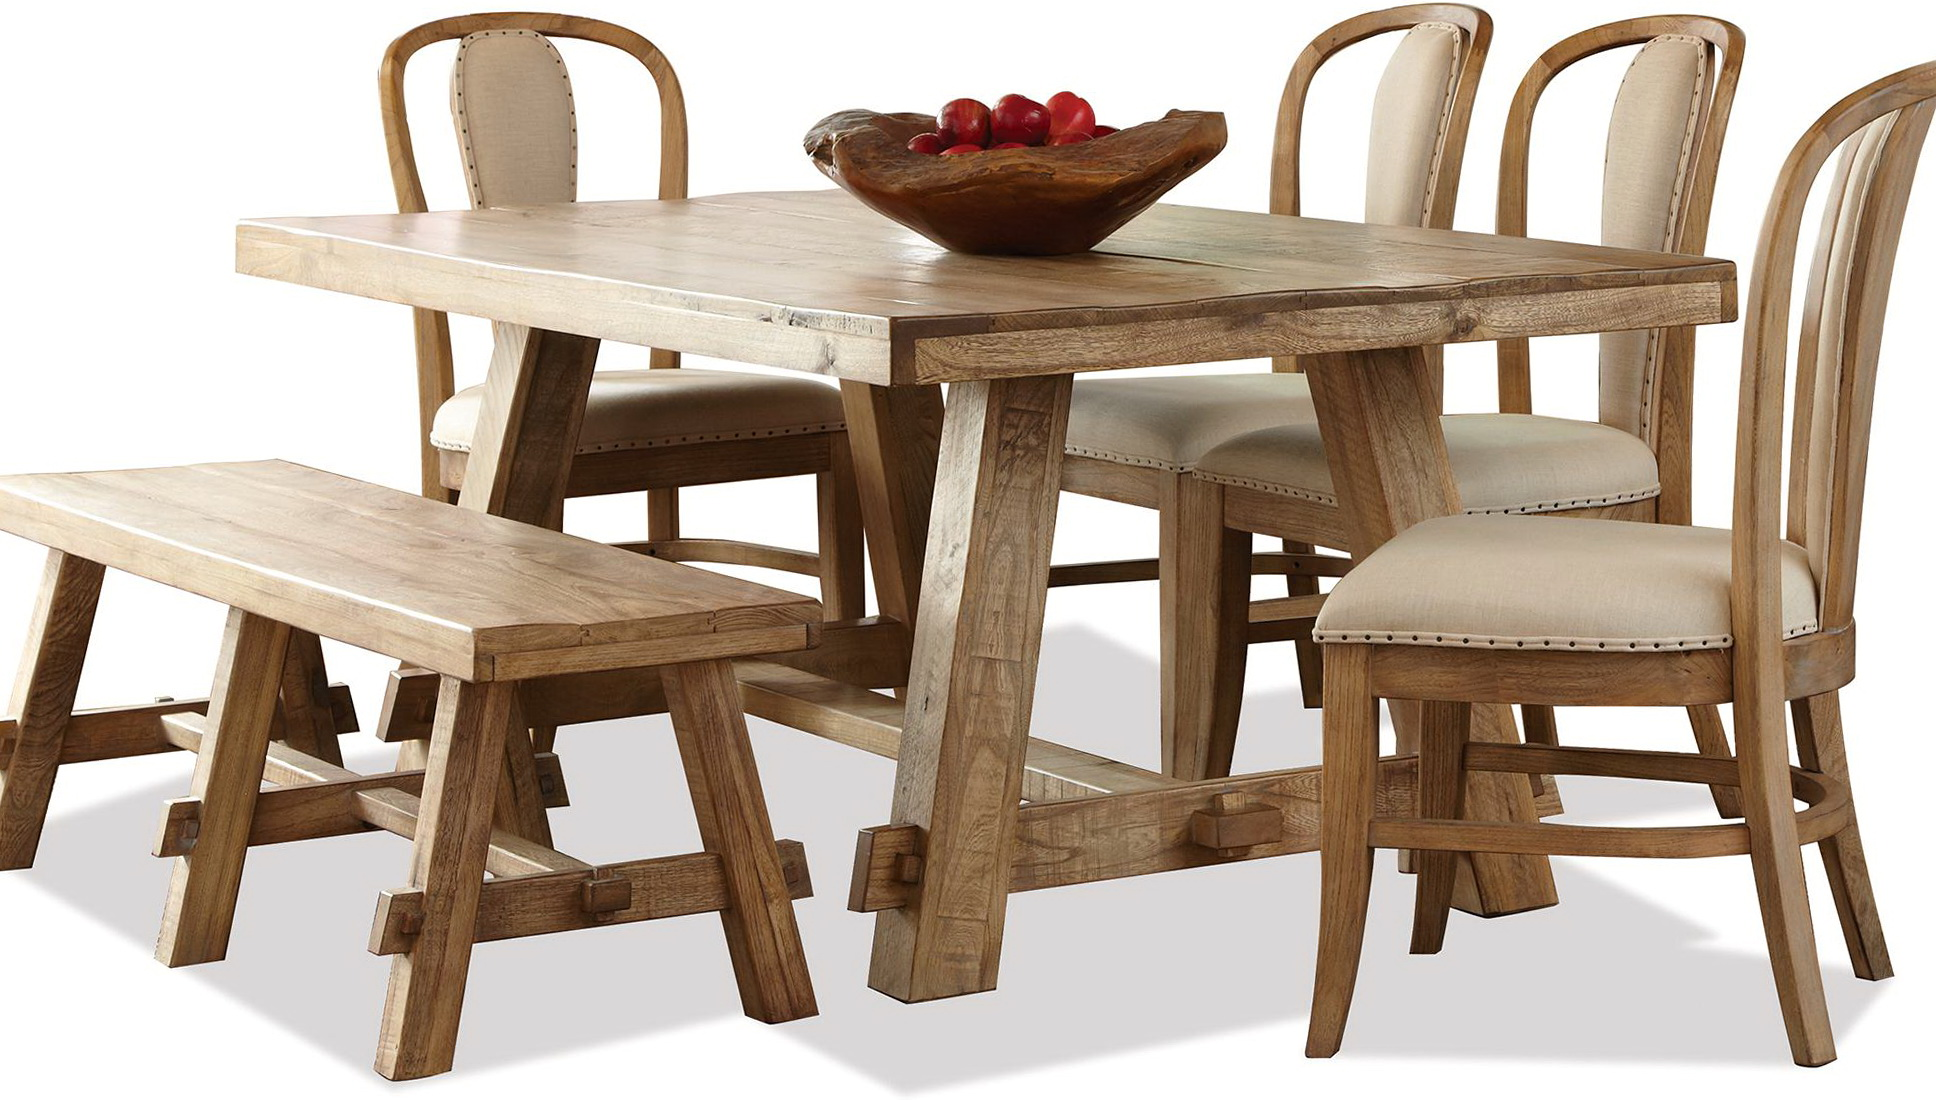 6 Piece Dining Set With Bench